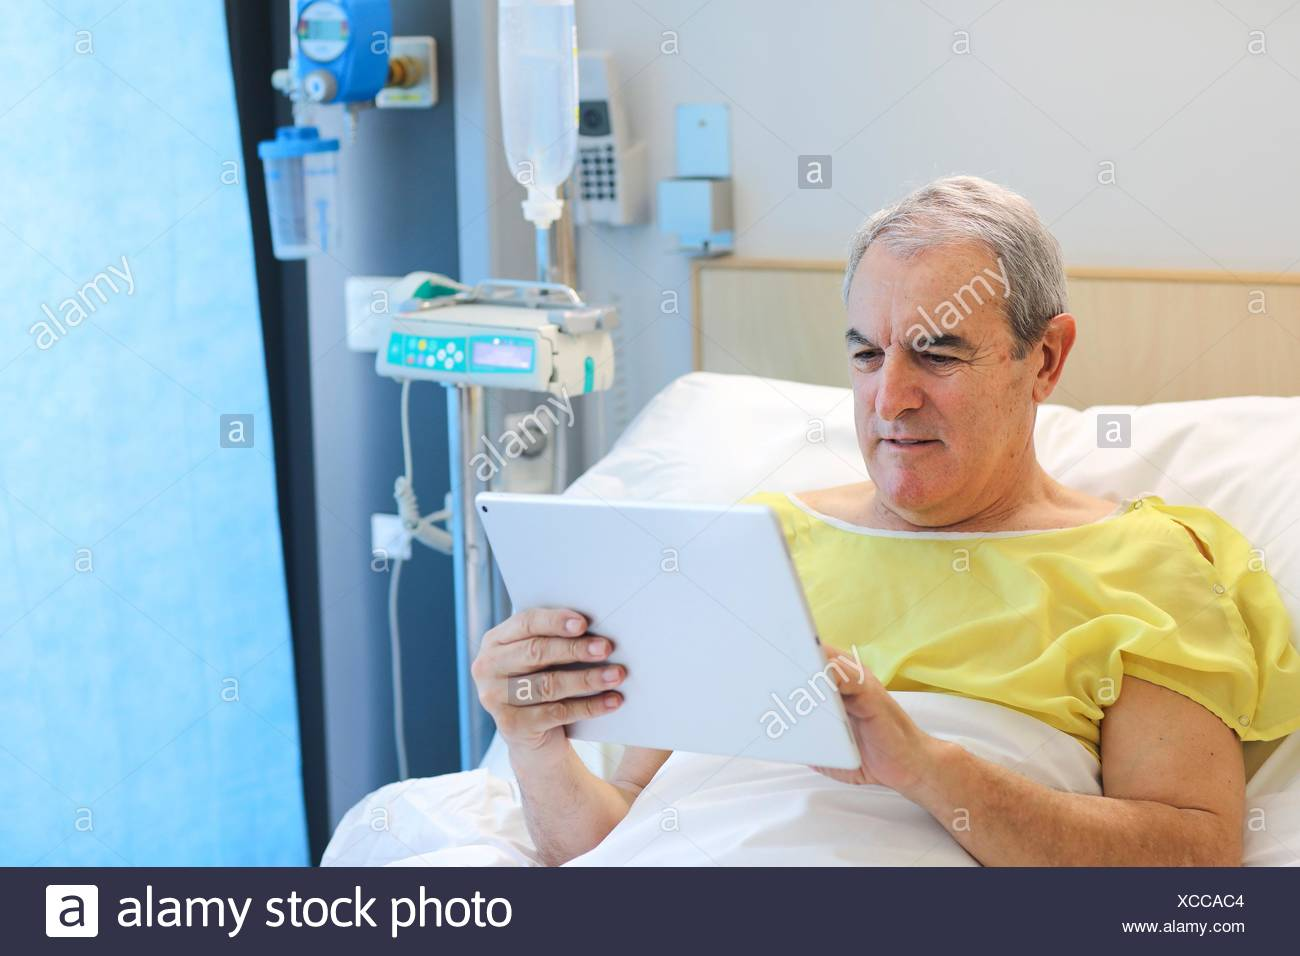 Patient en chambre d'hôpital avec tablet, Hôpital Photo Stock